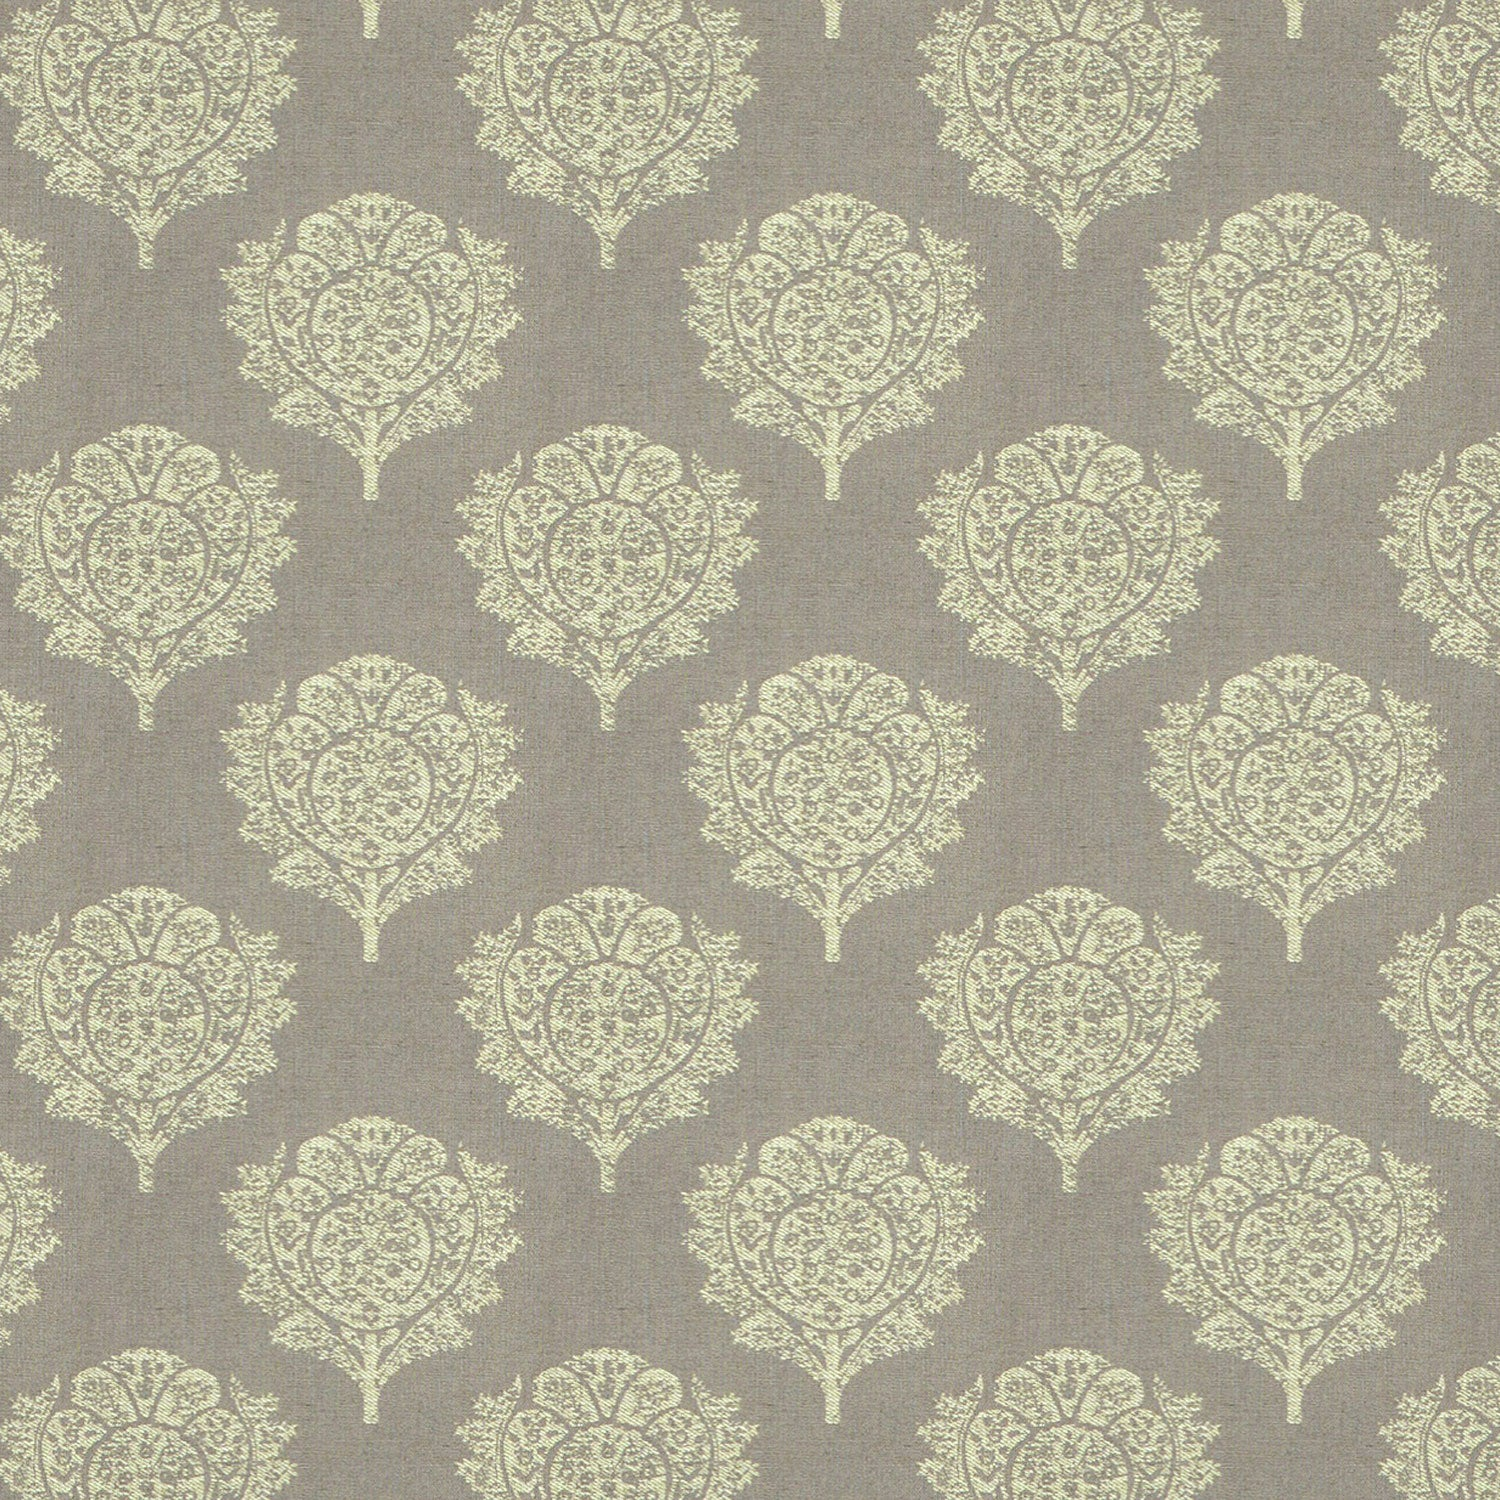 Mauve fabric suitable for both curtains and upholstery with large neutral woven design.